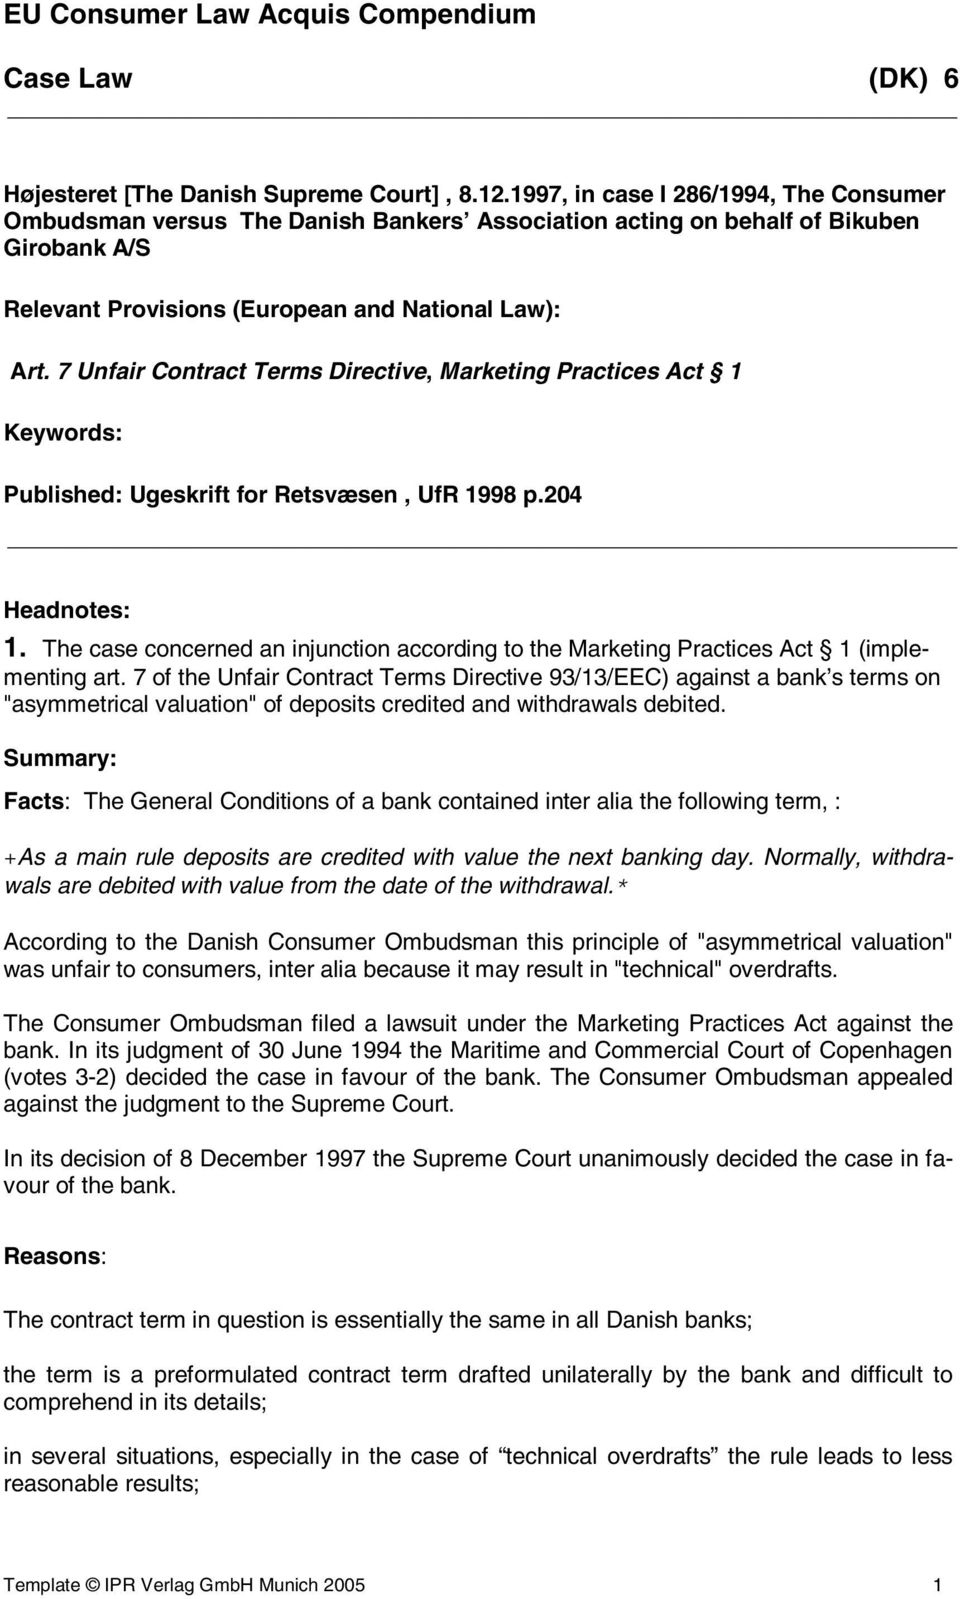 7 Unfair Contract Terms Directive, Marketing Practices Act 1 Keywords: Published: Ugeskrift for Retsvæsen, UfR 1998 p.204 Headnotes: 1.